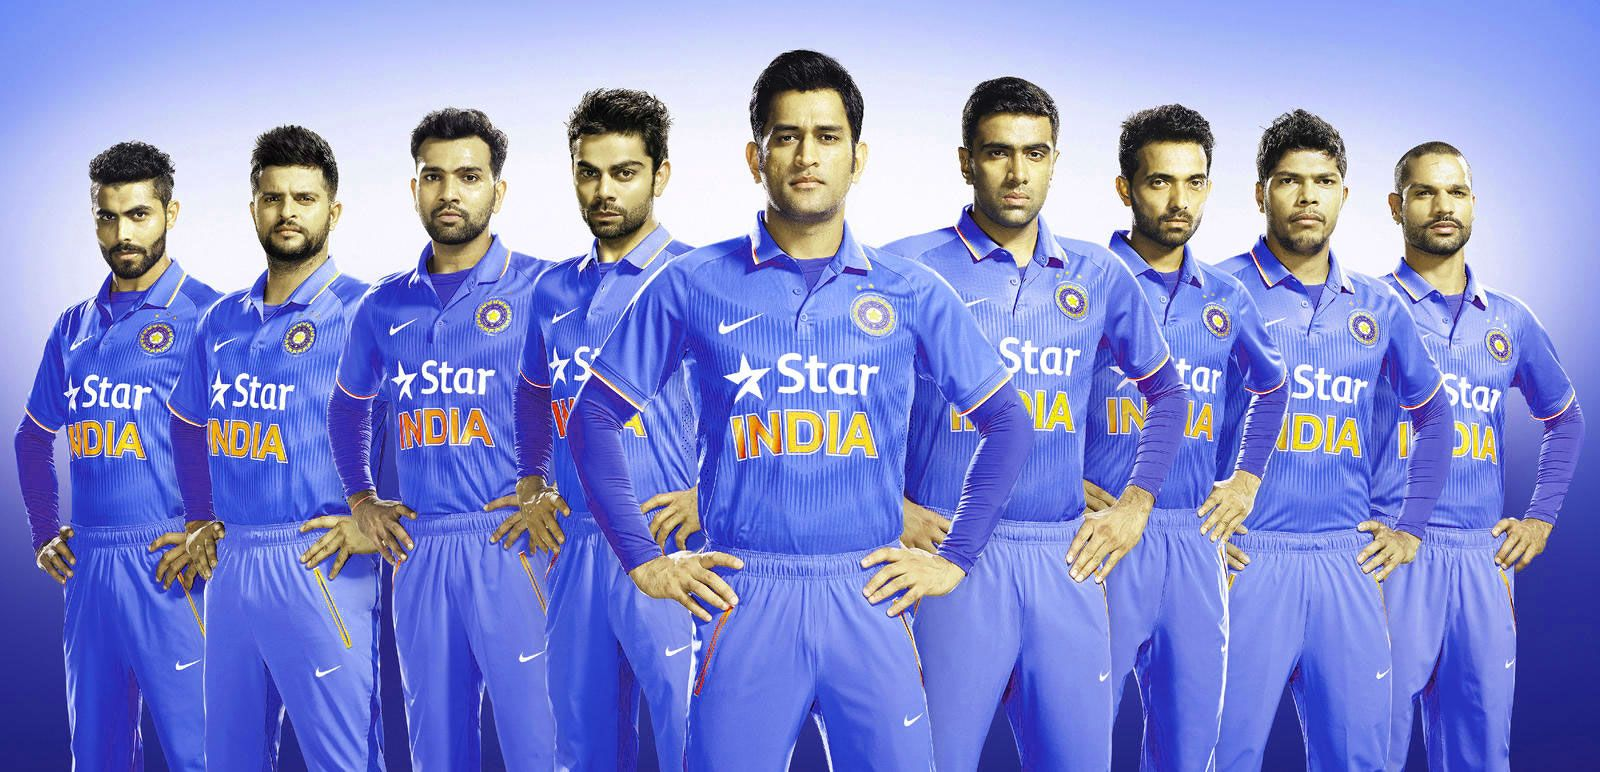 Indian Cricket Wallpapers - Top Free